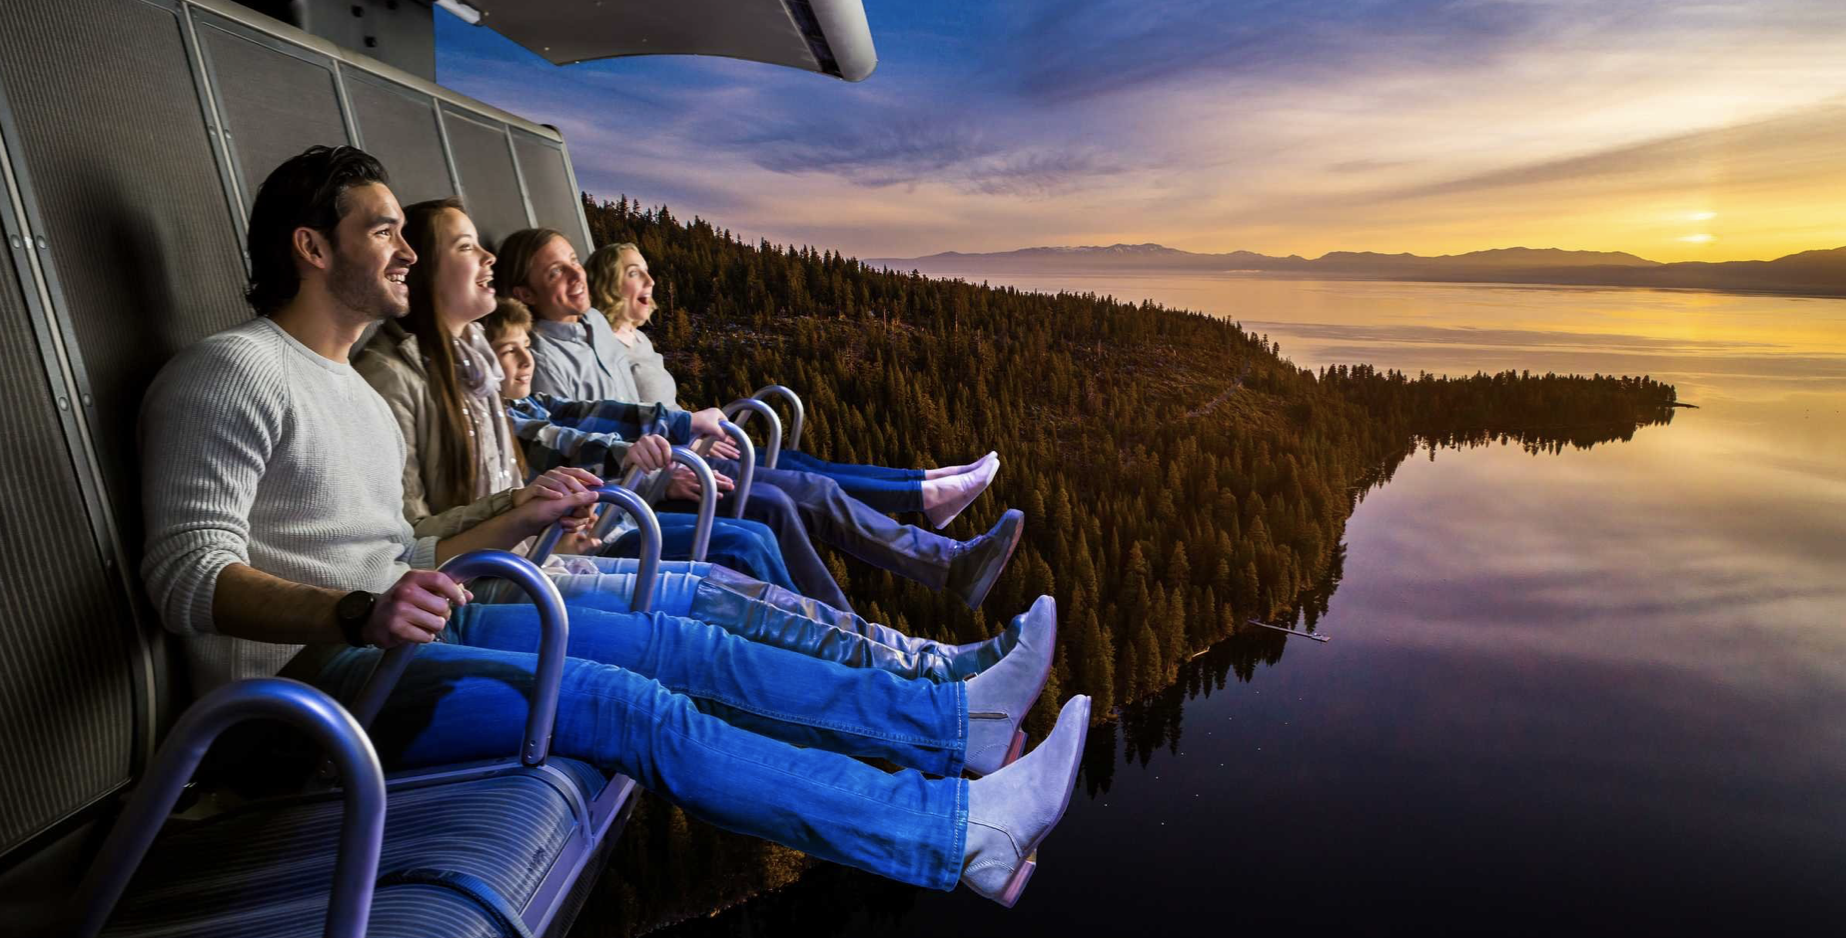 New Las Vegas attraction will dangle tourists over Grand Canyon, Lake Tahoe — without leaving The Strip